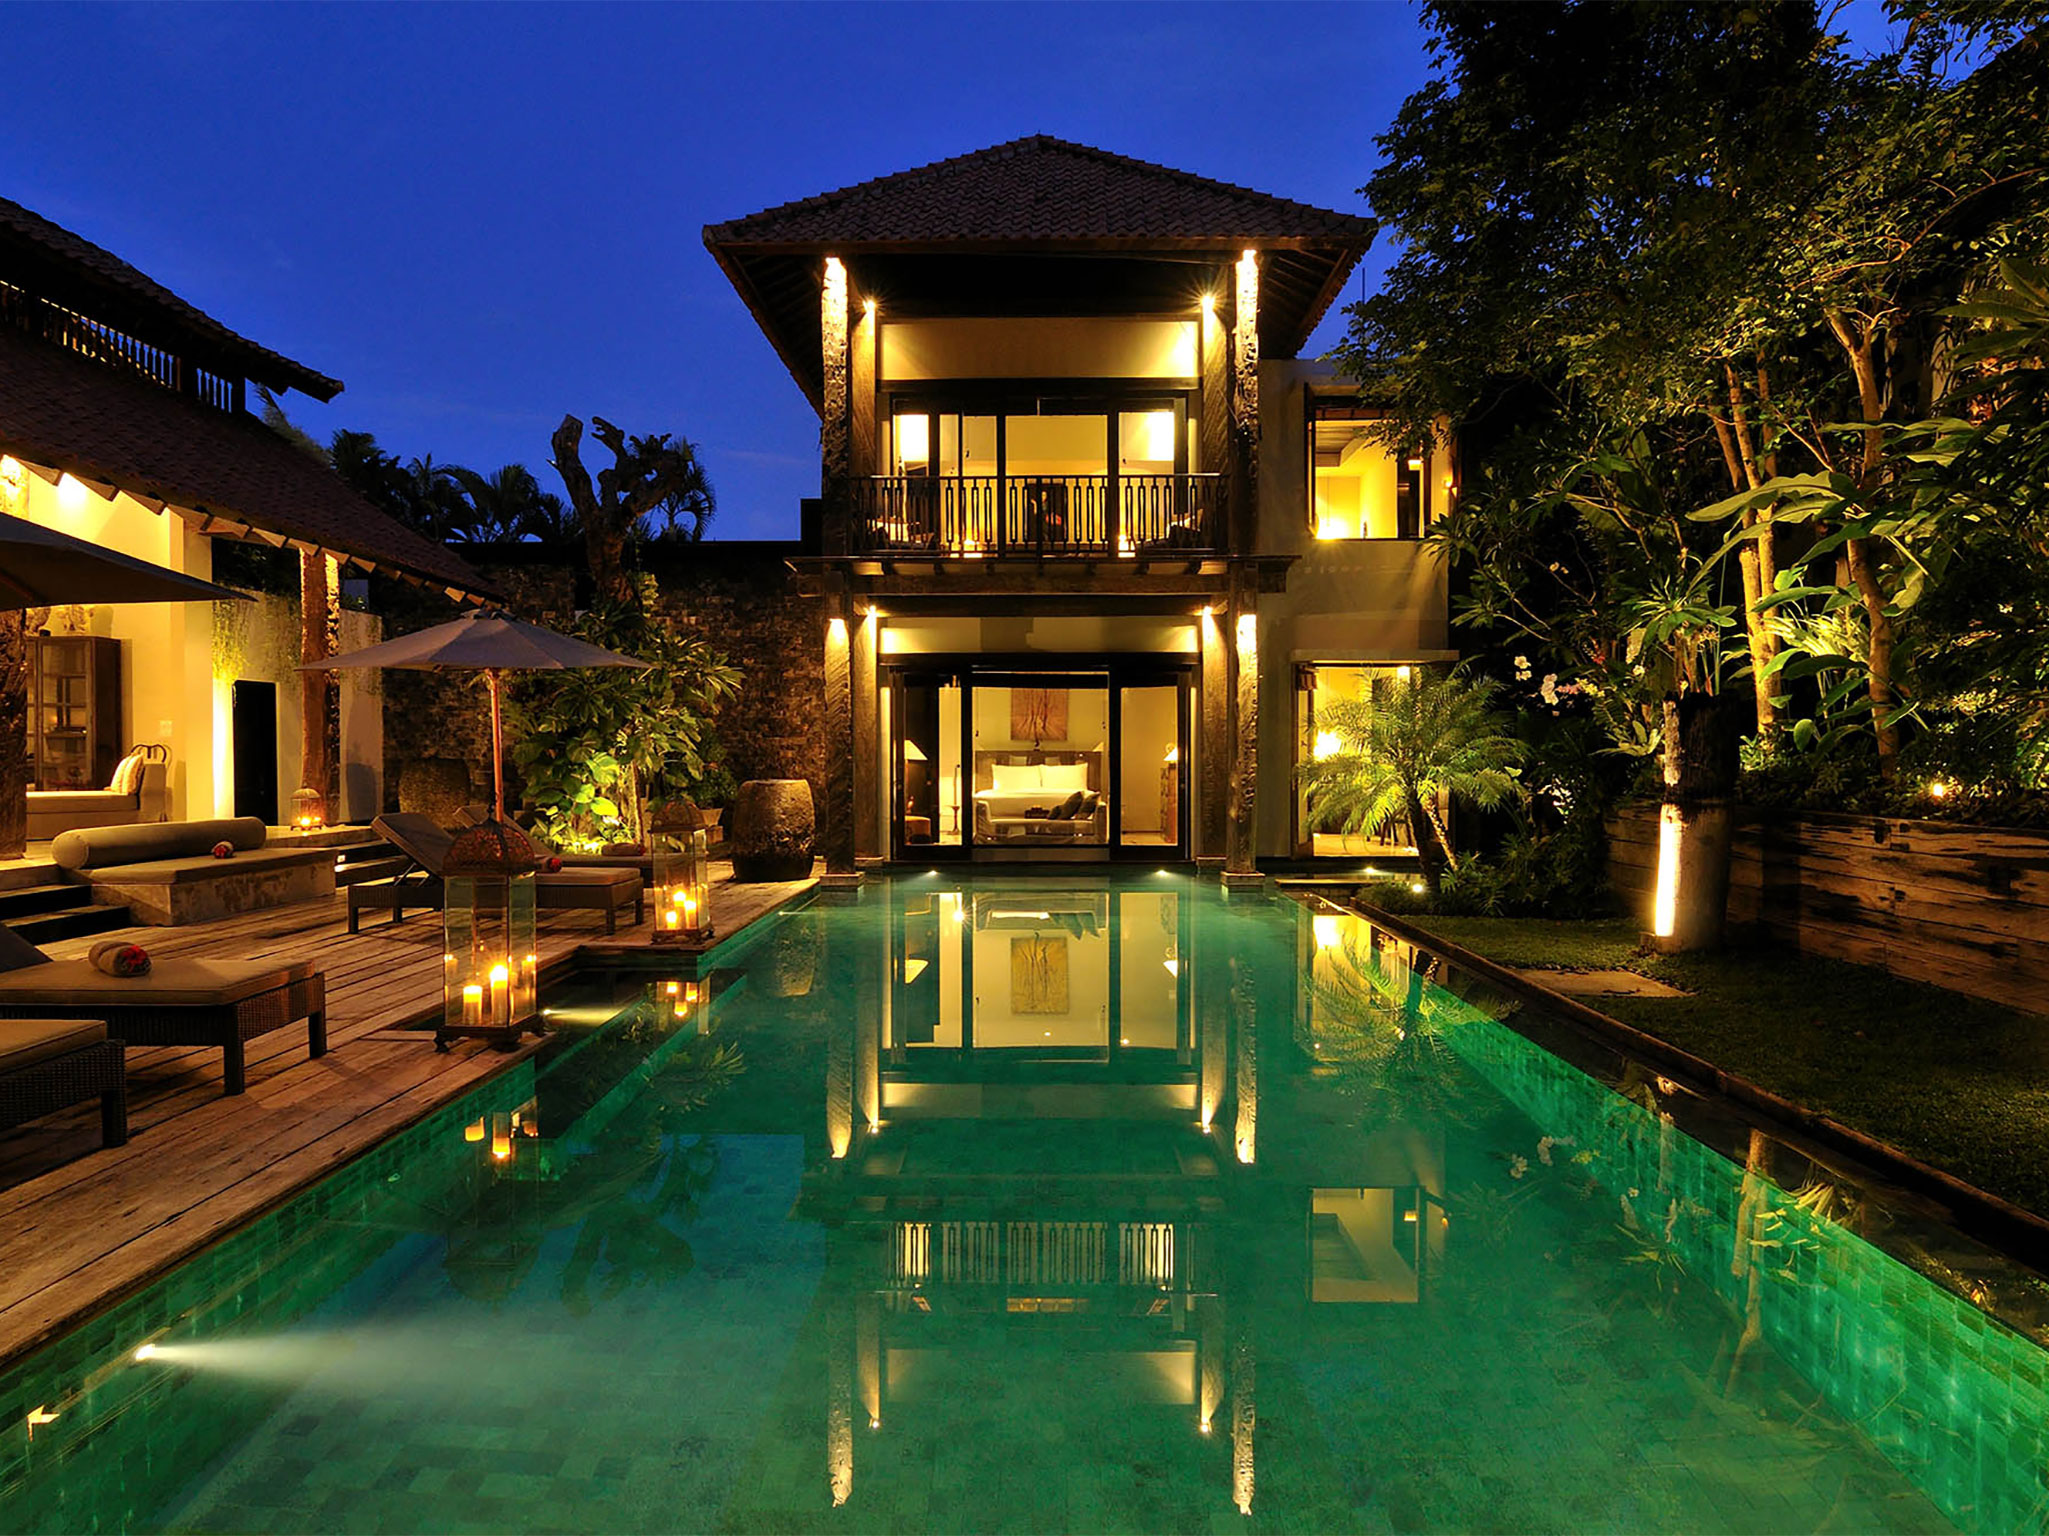 Villa DeSuma - Night time view across the pool - Villa De Suma, Seminyak, Bali